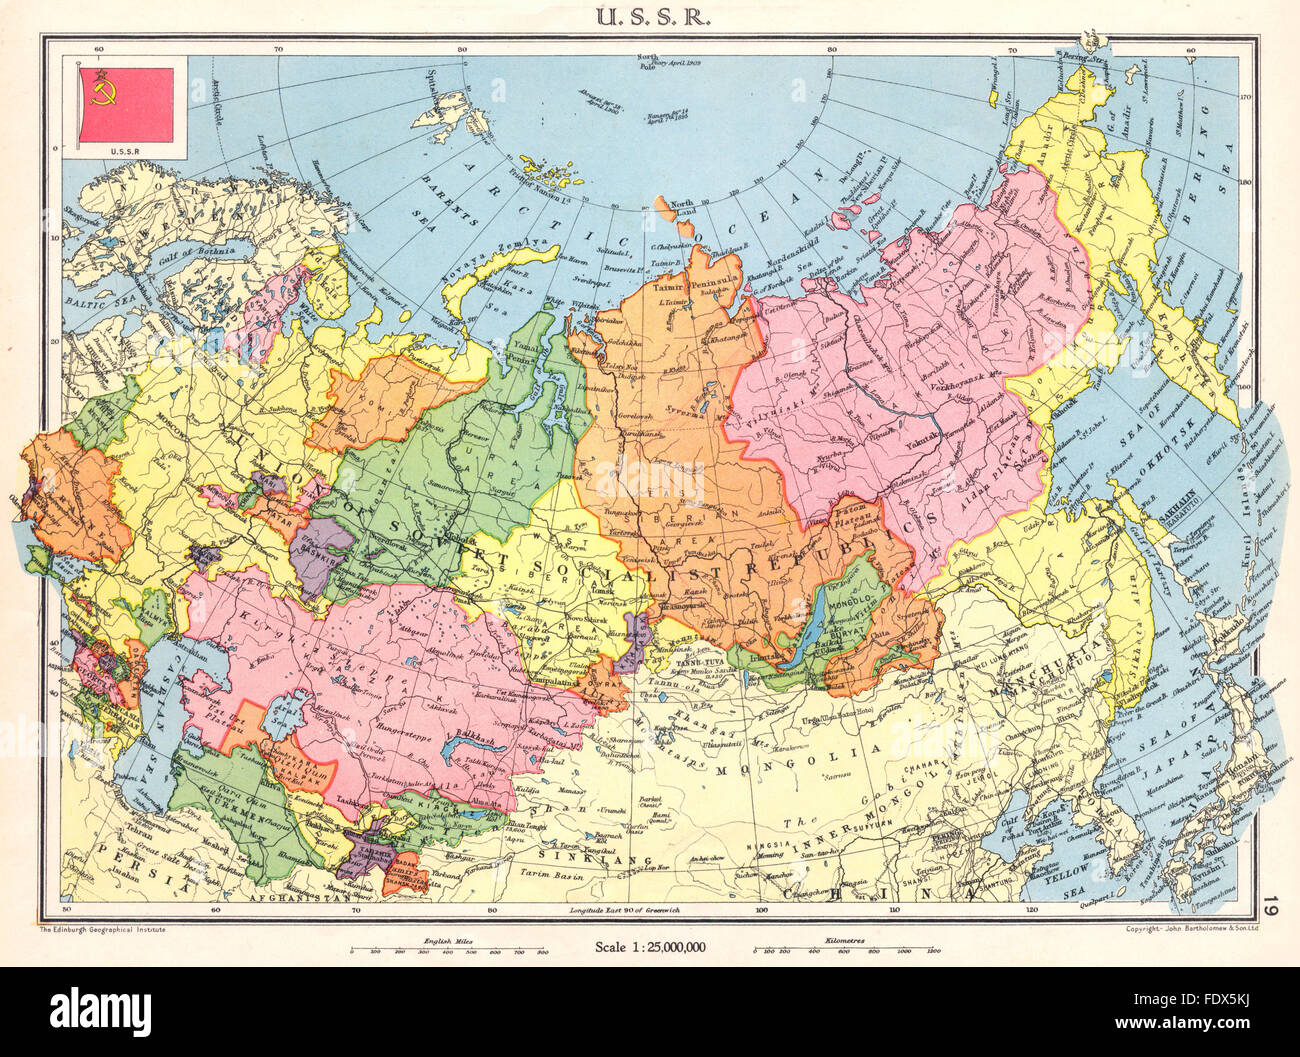 Ussr map republics of the soviet union wikipedia px ussr russia u s s r soviet union vintage map stock photo gumiabroncs